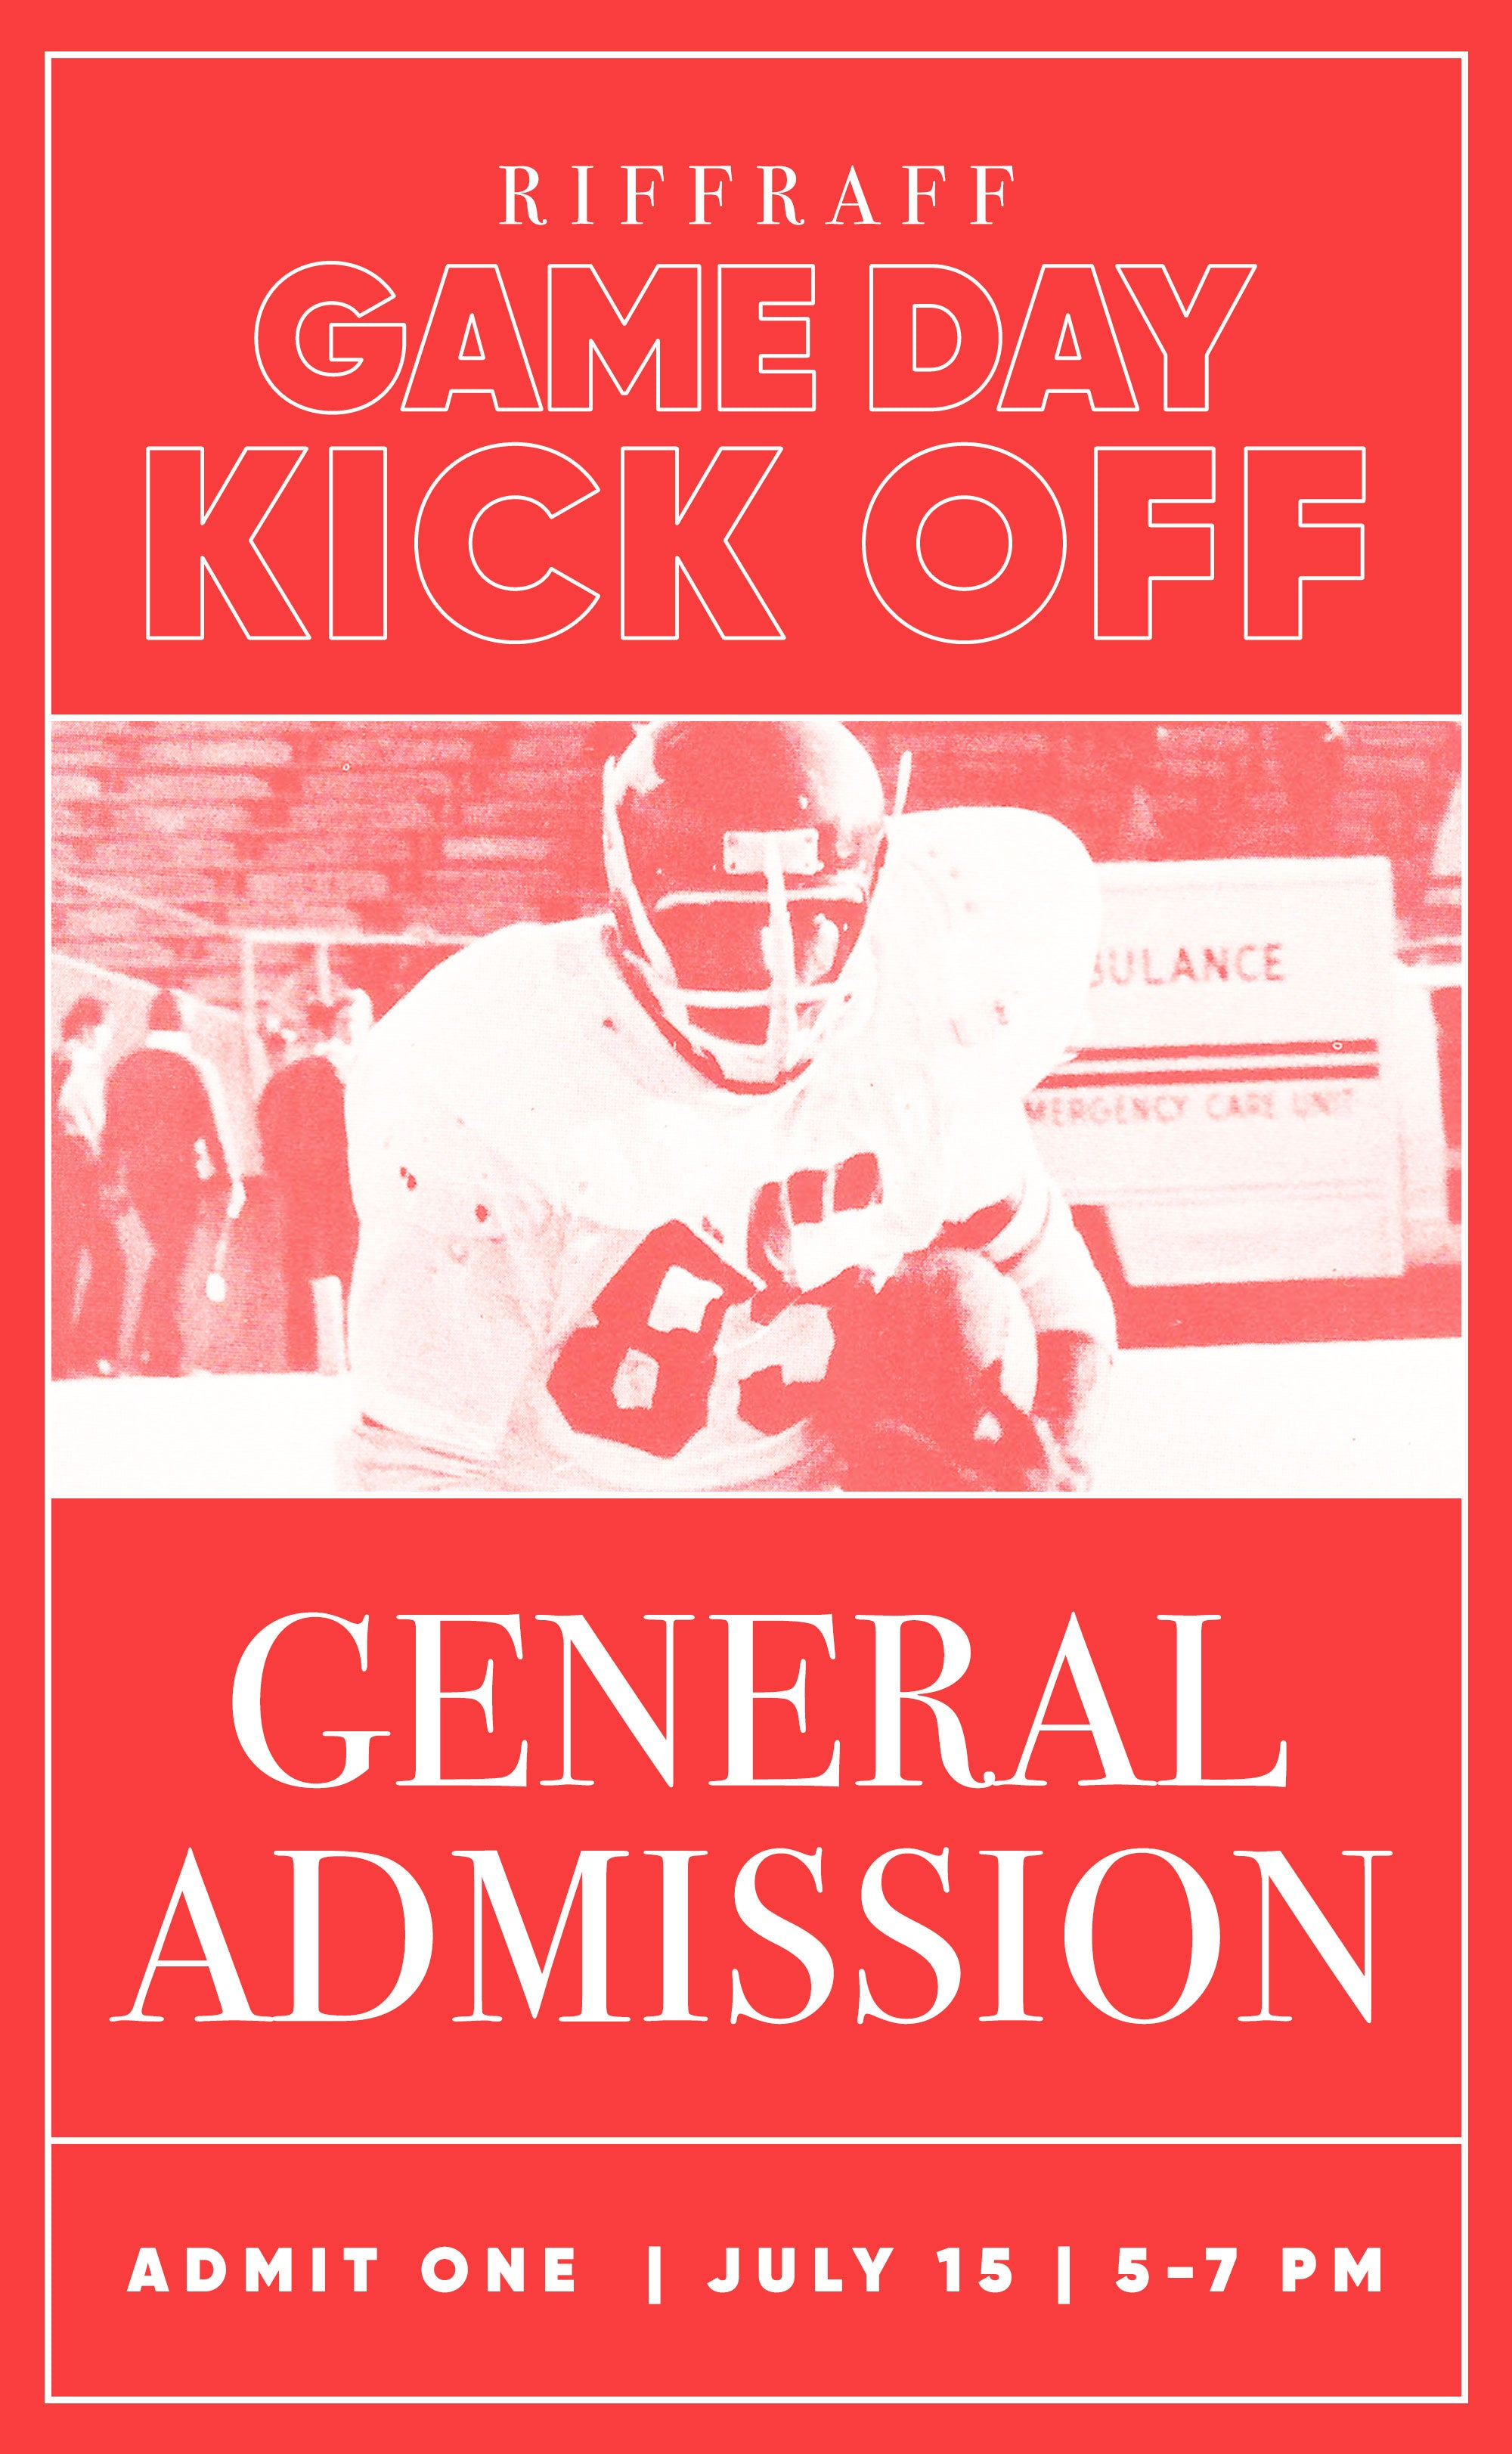 riffraff gameday kick off ticket - general admission